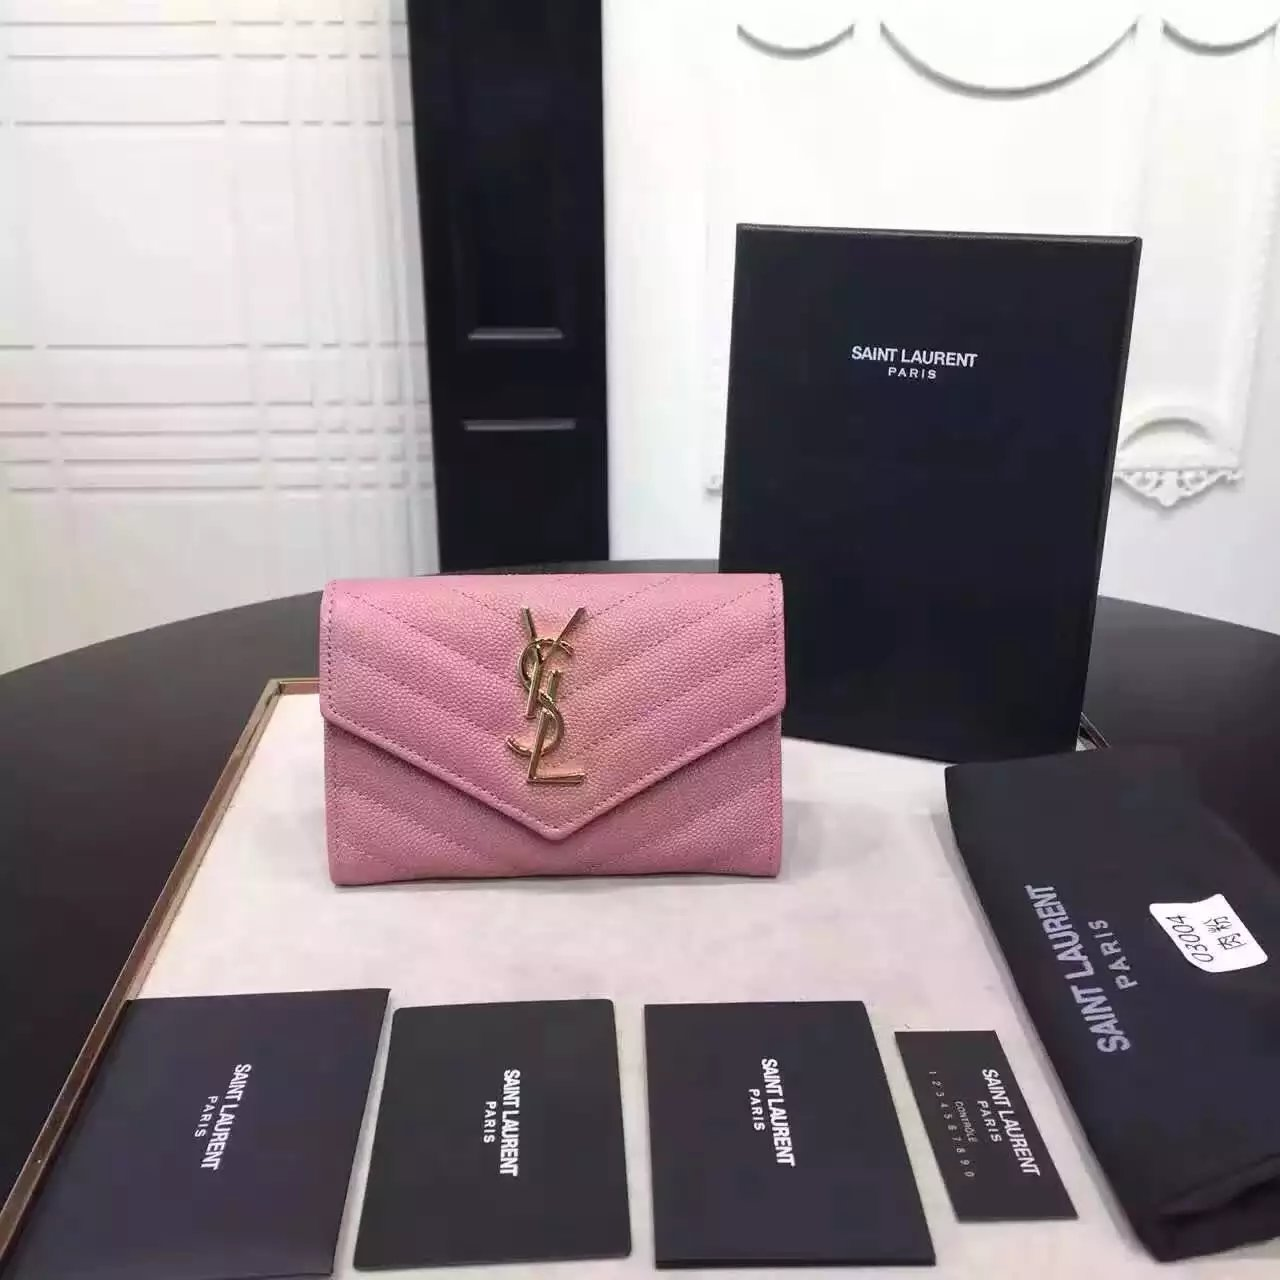 2016 Cheap YSL Out Sale with Free Shipping-Saint Laurent Envelope Wallet in Pink Grain de Poudre Textured Matelassé Leather